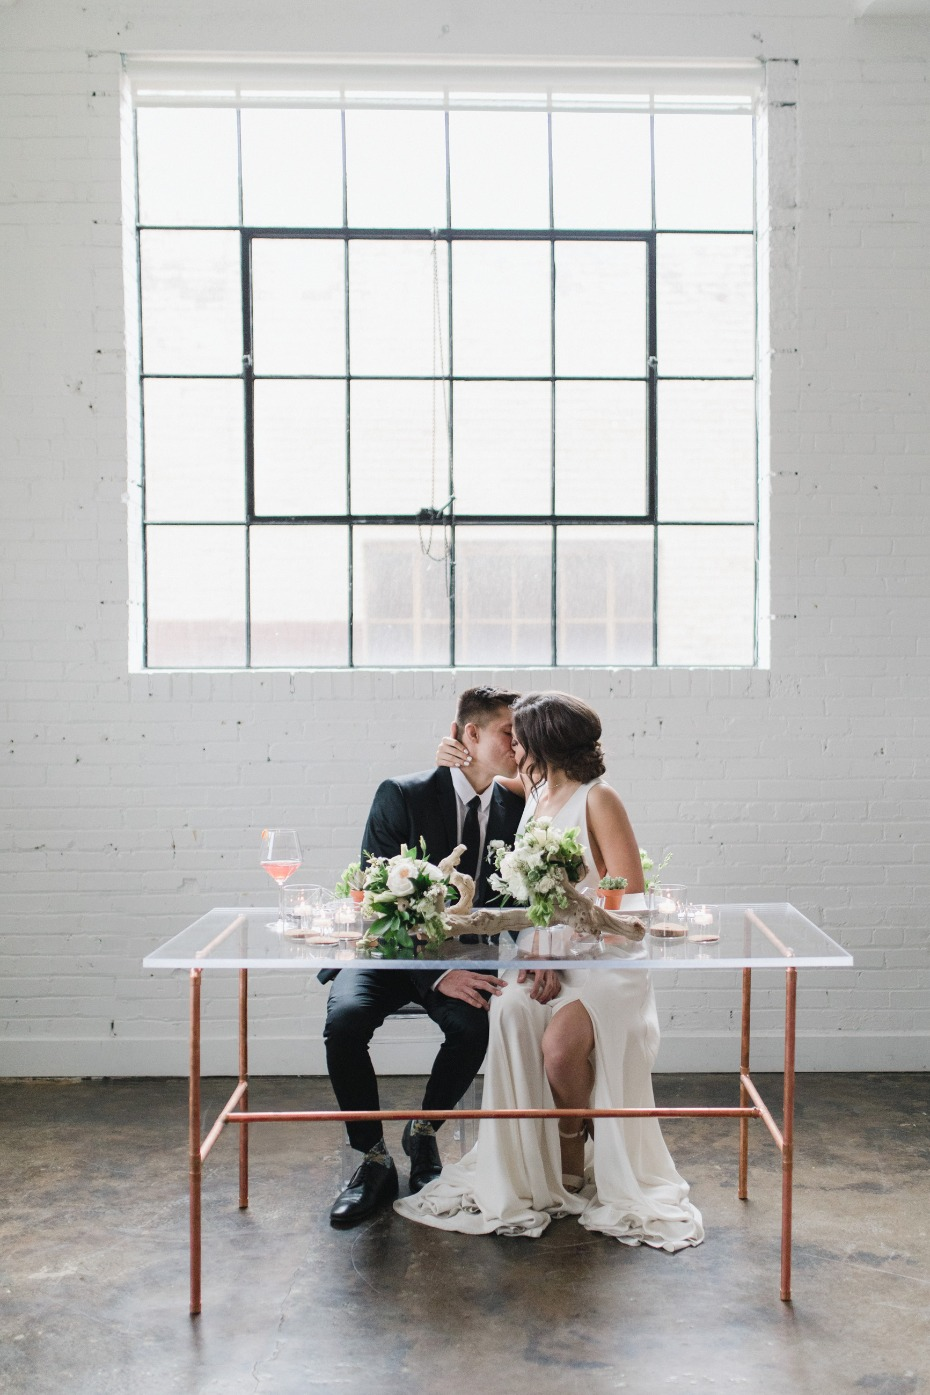 Modern wedding ideas that are a must-see